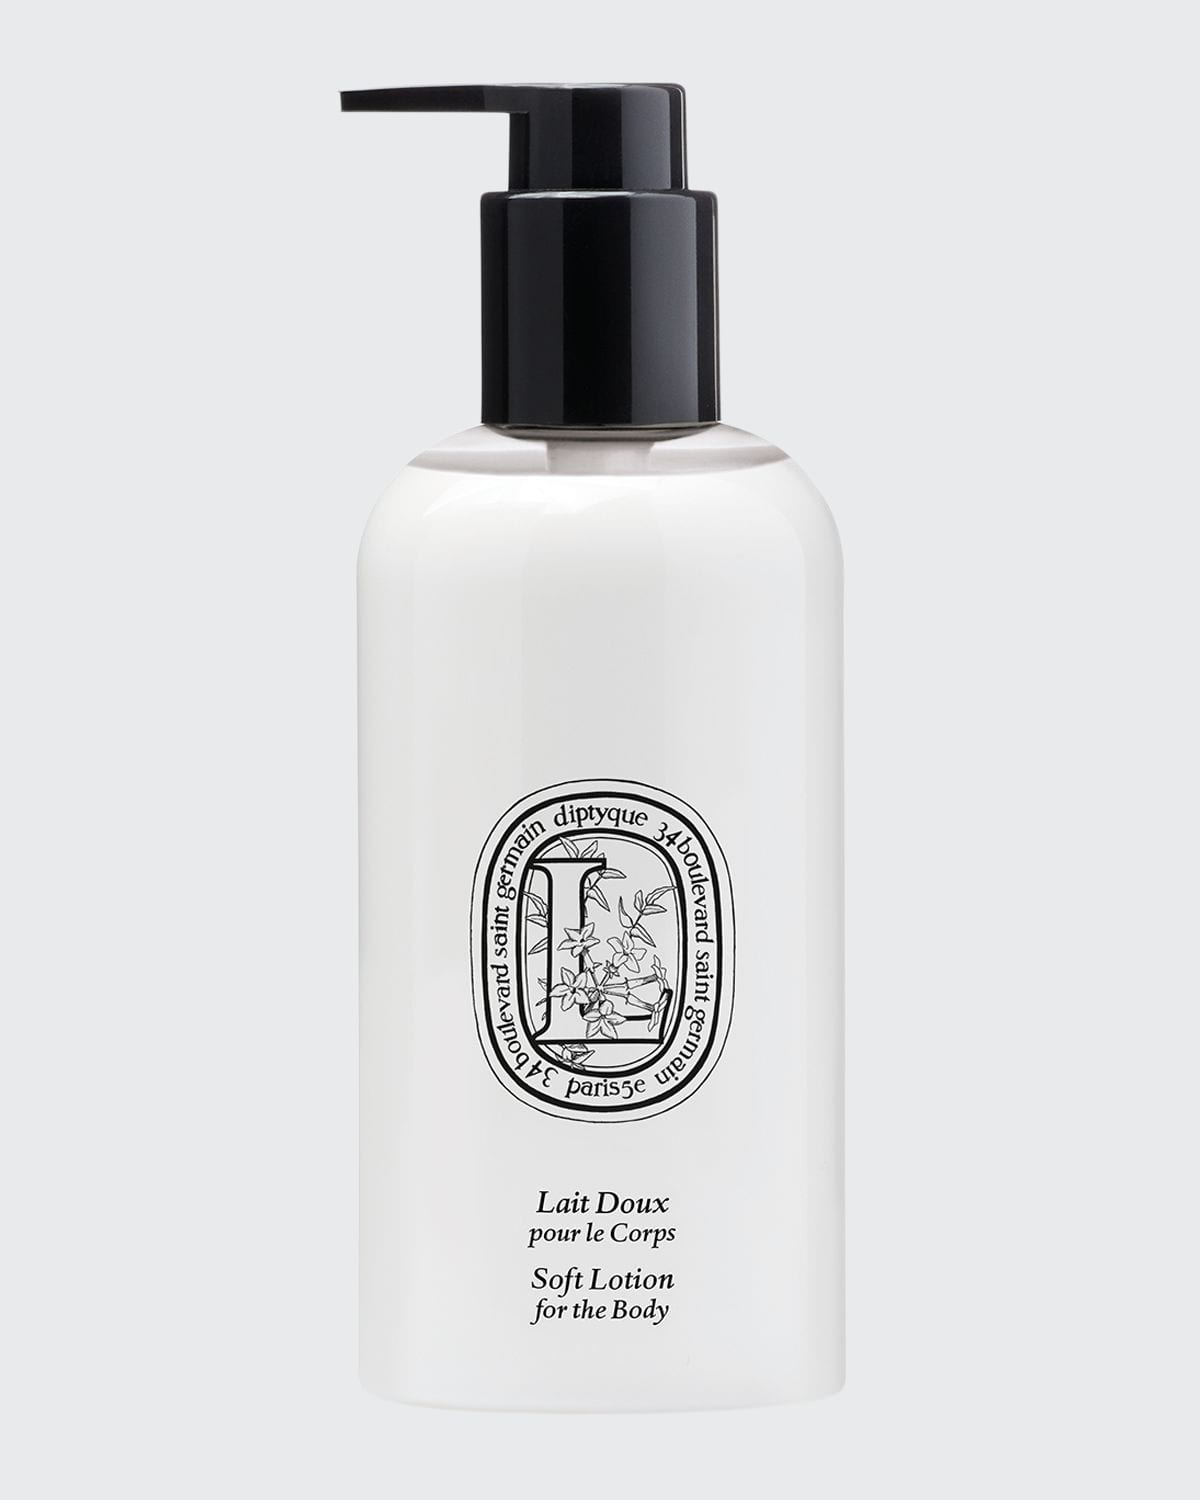 8.5 oz. Soft Lotion for the Body